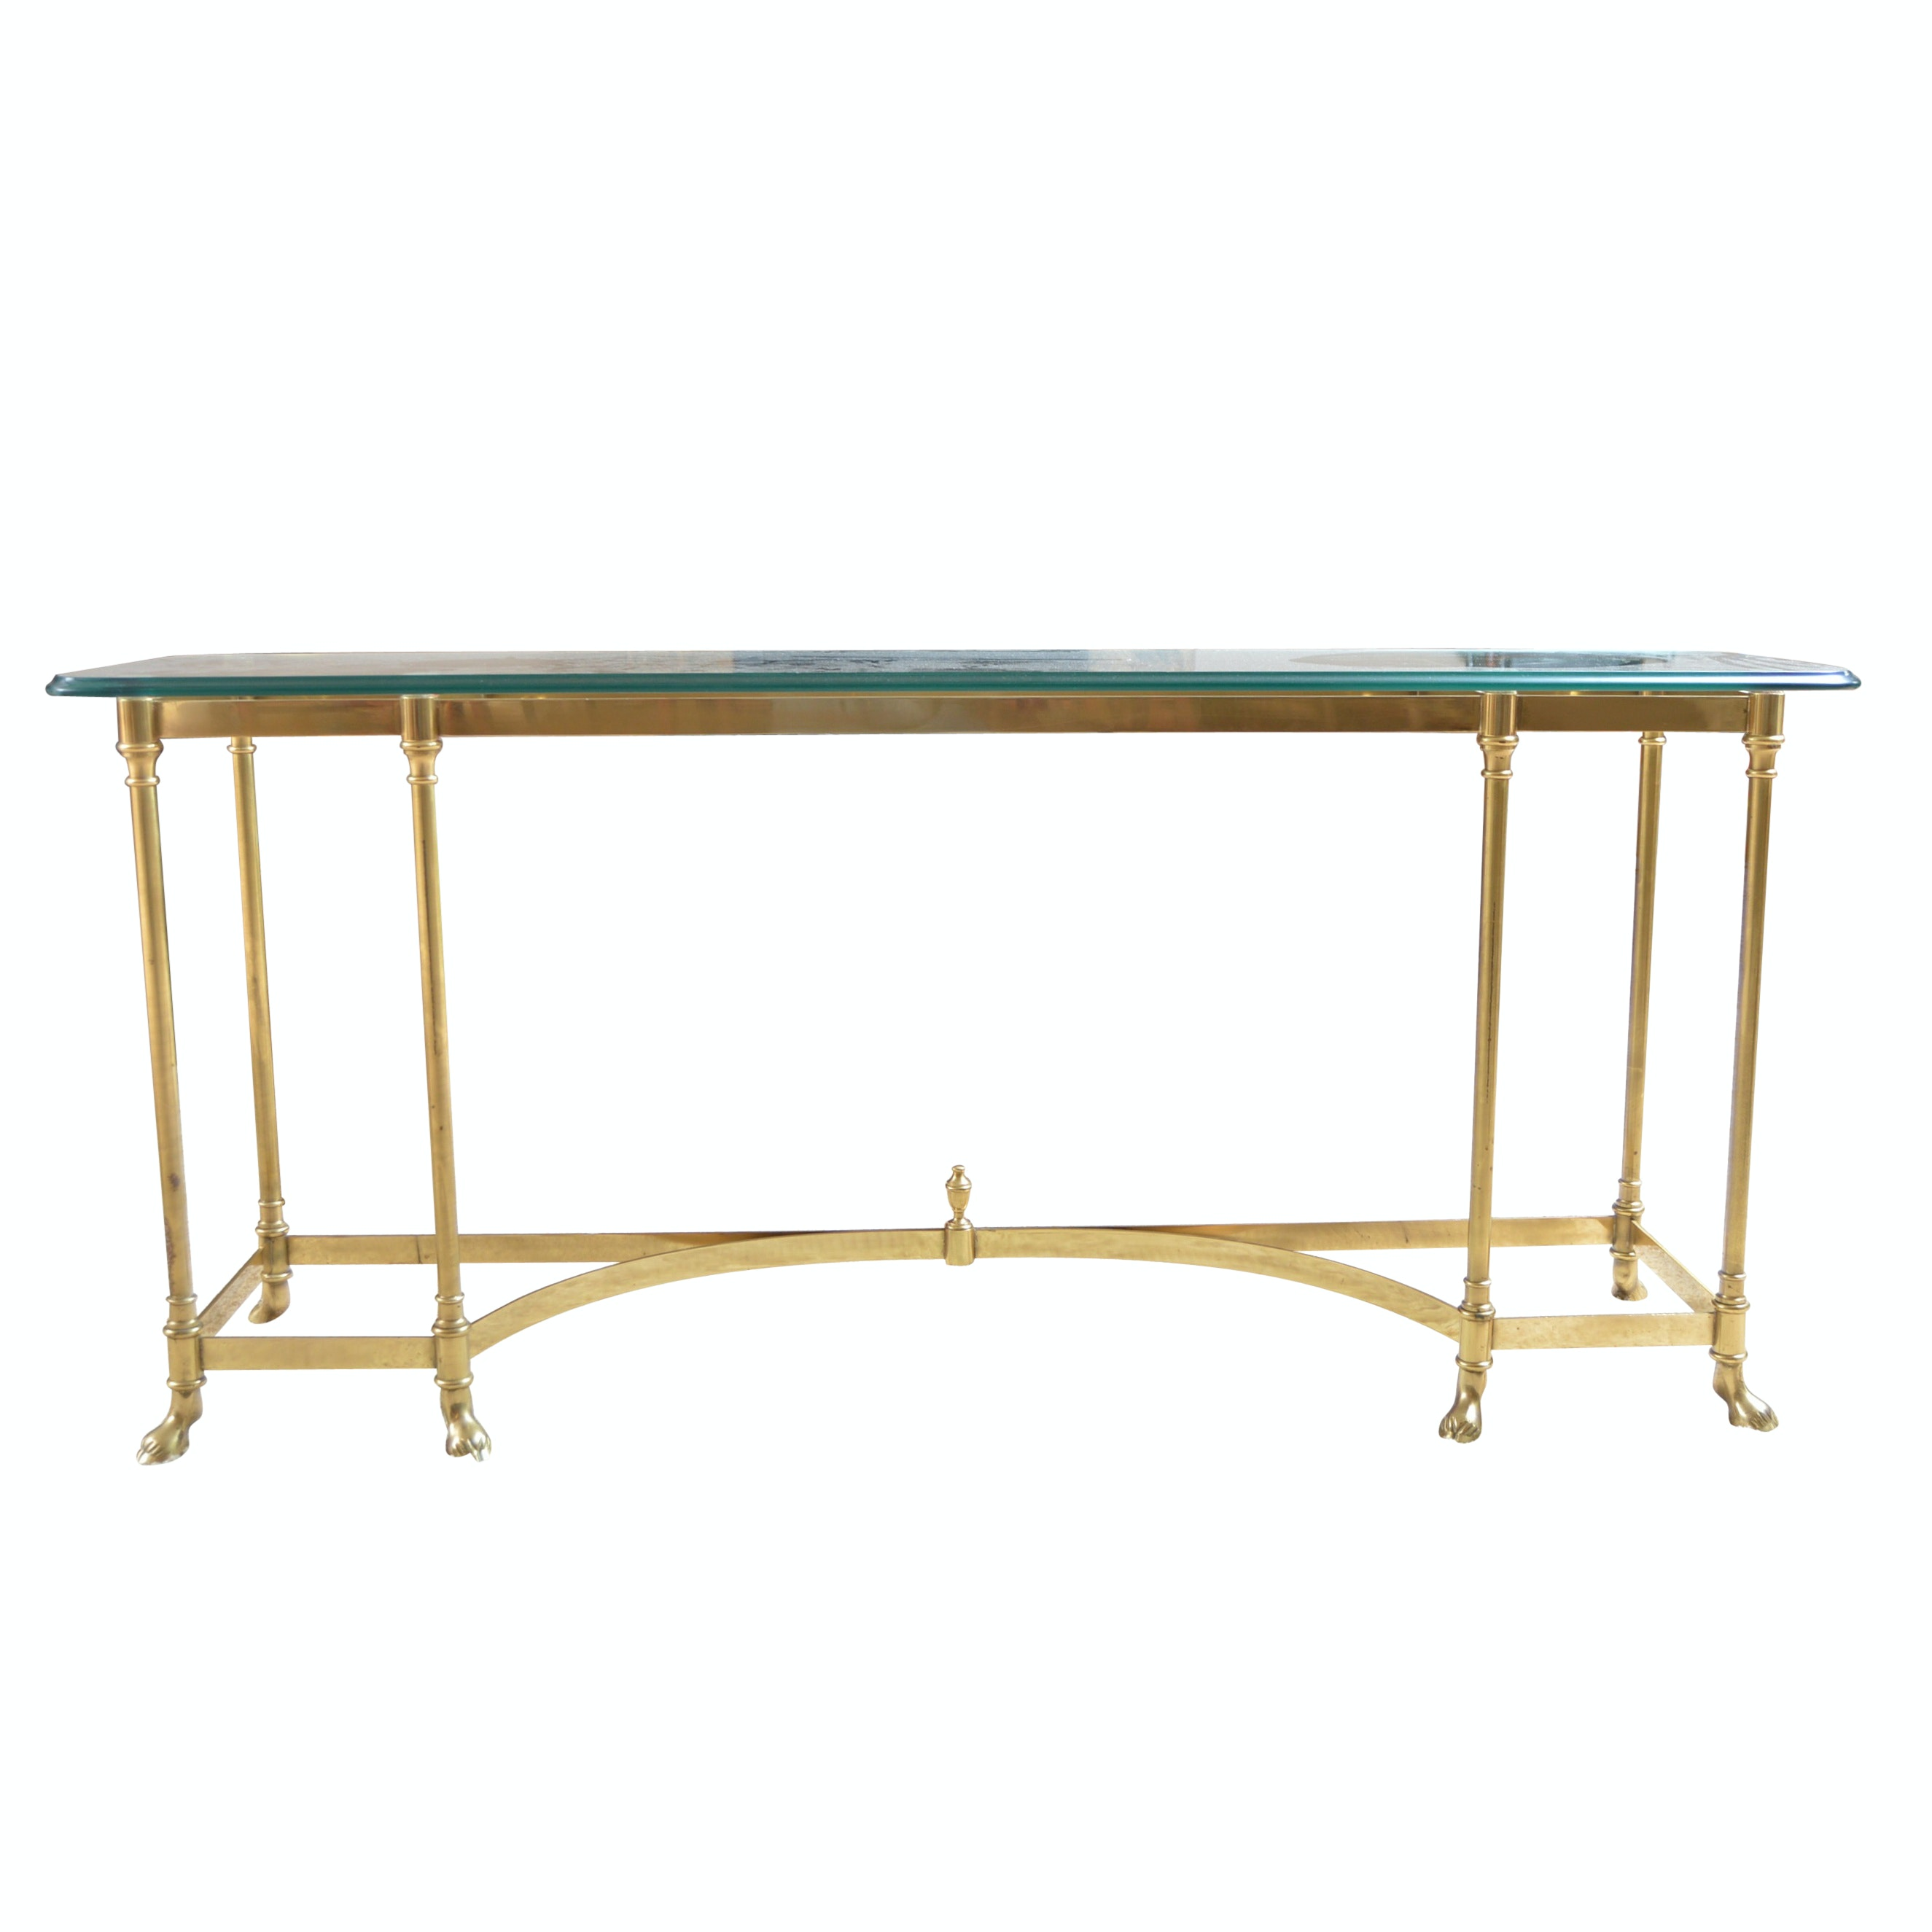 Neoclassic Style Brass Console Table with Glass Top